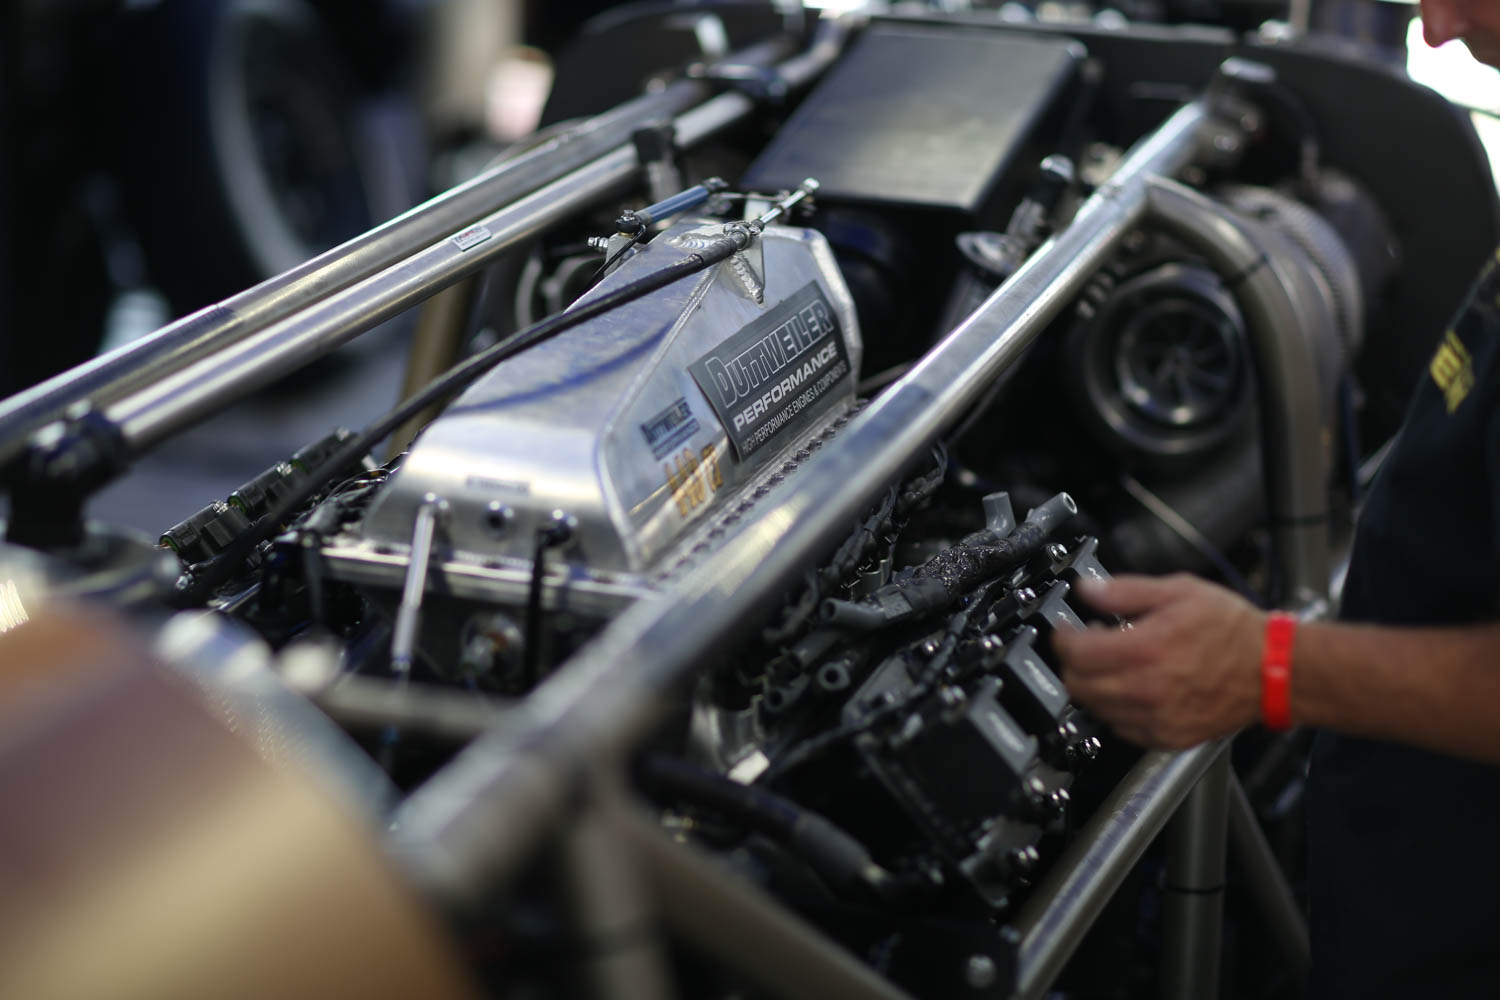 Bonneville classes are divided by vehicle type, engine displacement, fuel, and whether or not they use forced induction. The Speed Demon team holds five blown fuel streamliner records using different smallblock Chevy V-8s.